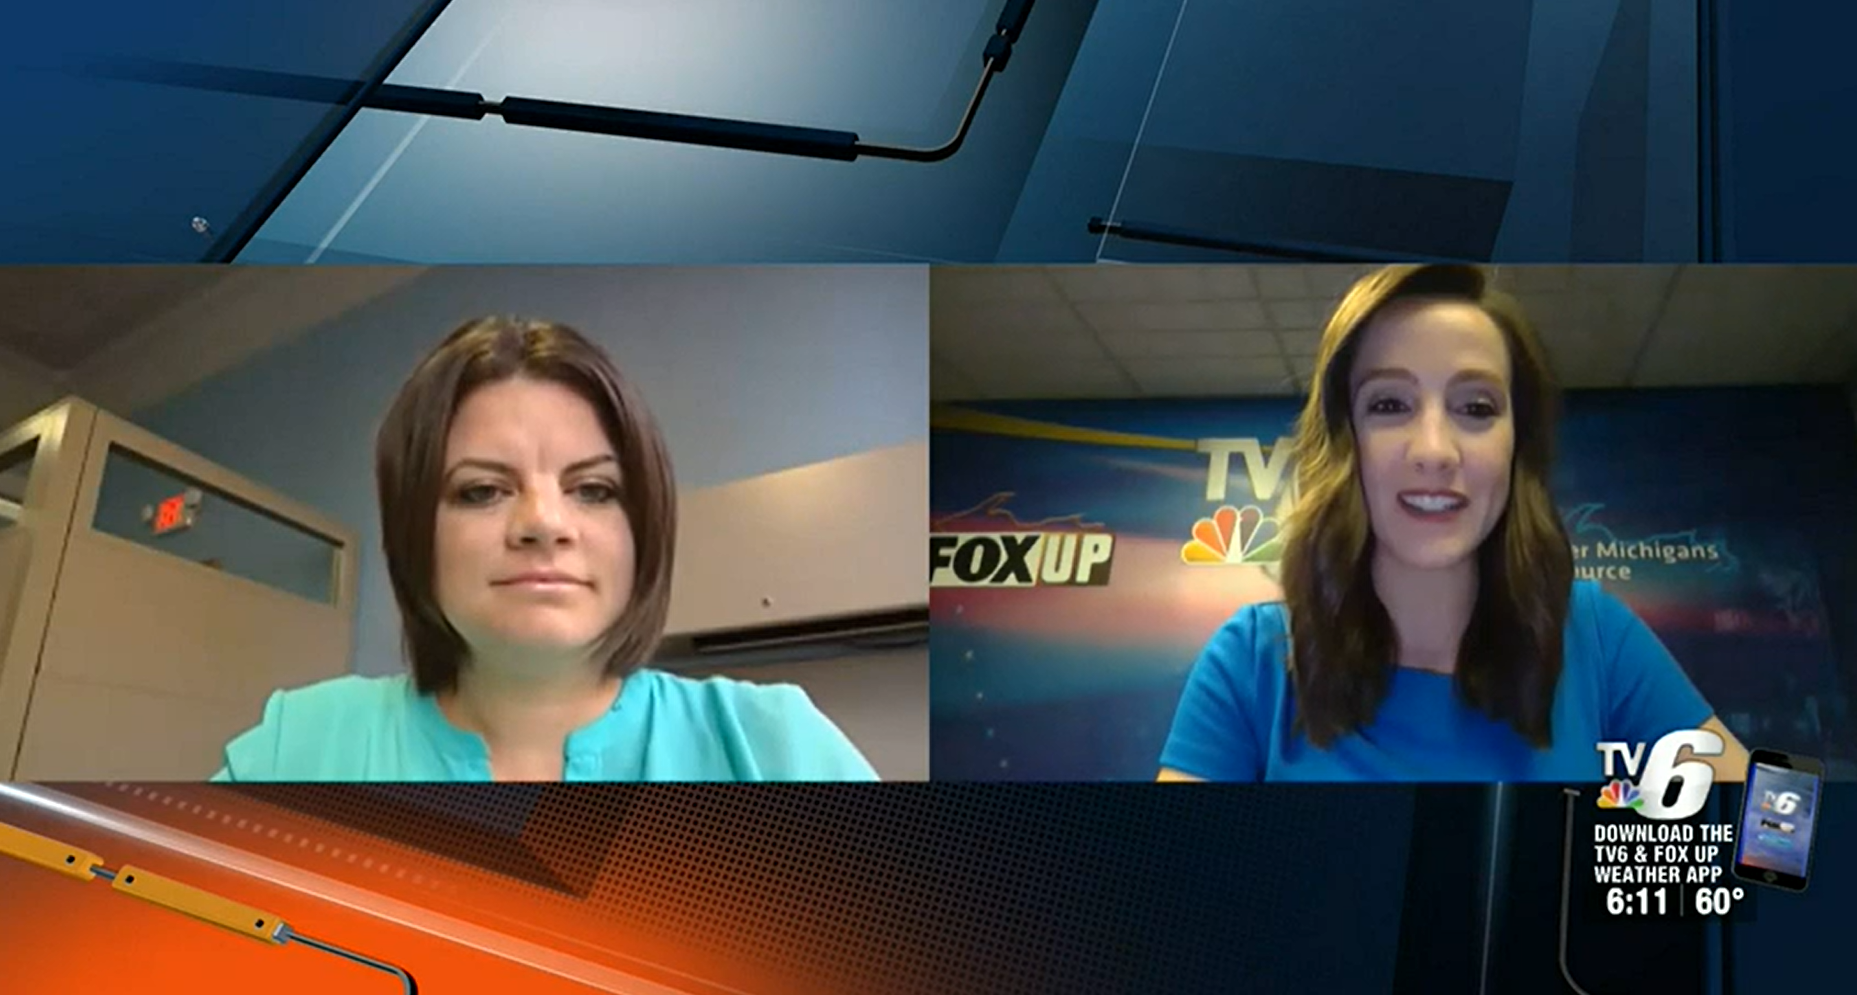 Two women are on the screen side-by-side participating in a virtual interview.